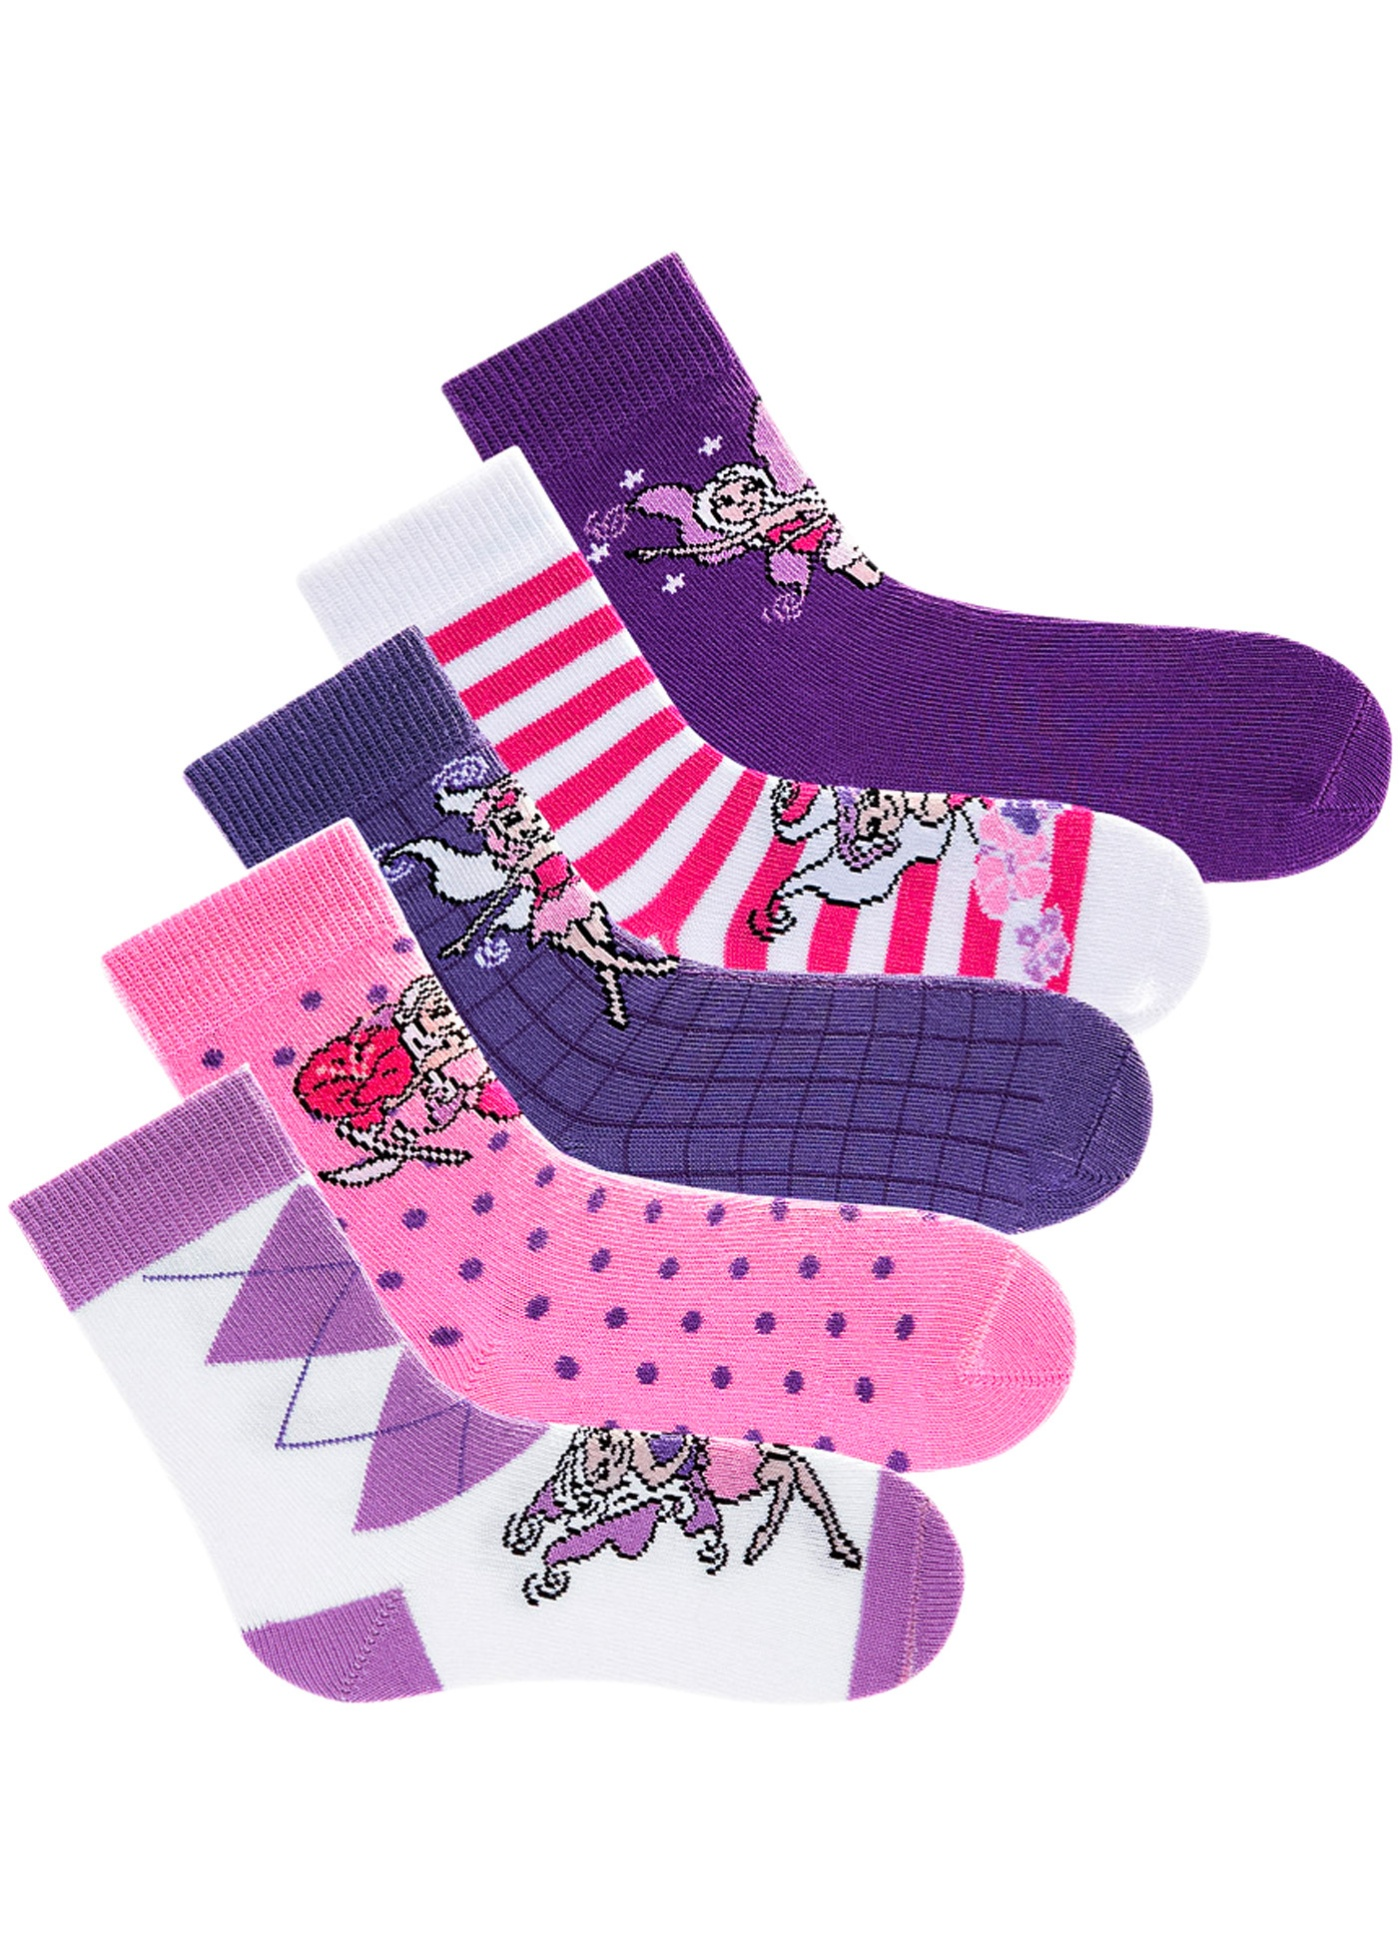 GO IN Socken (5er-Pack) - (19/22)